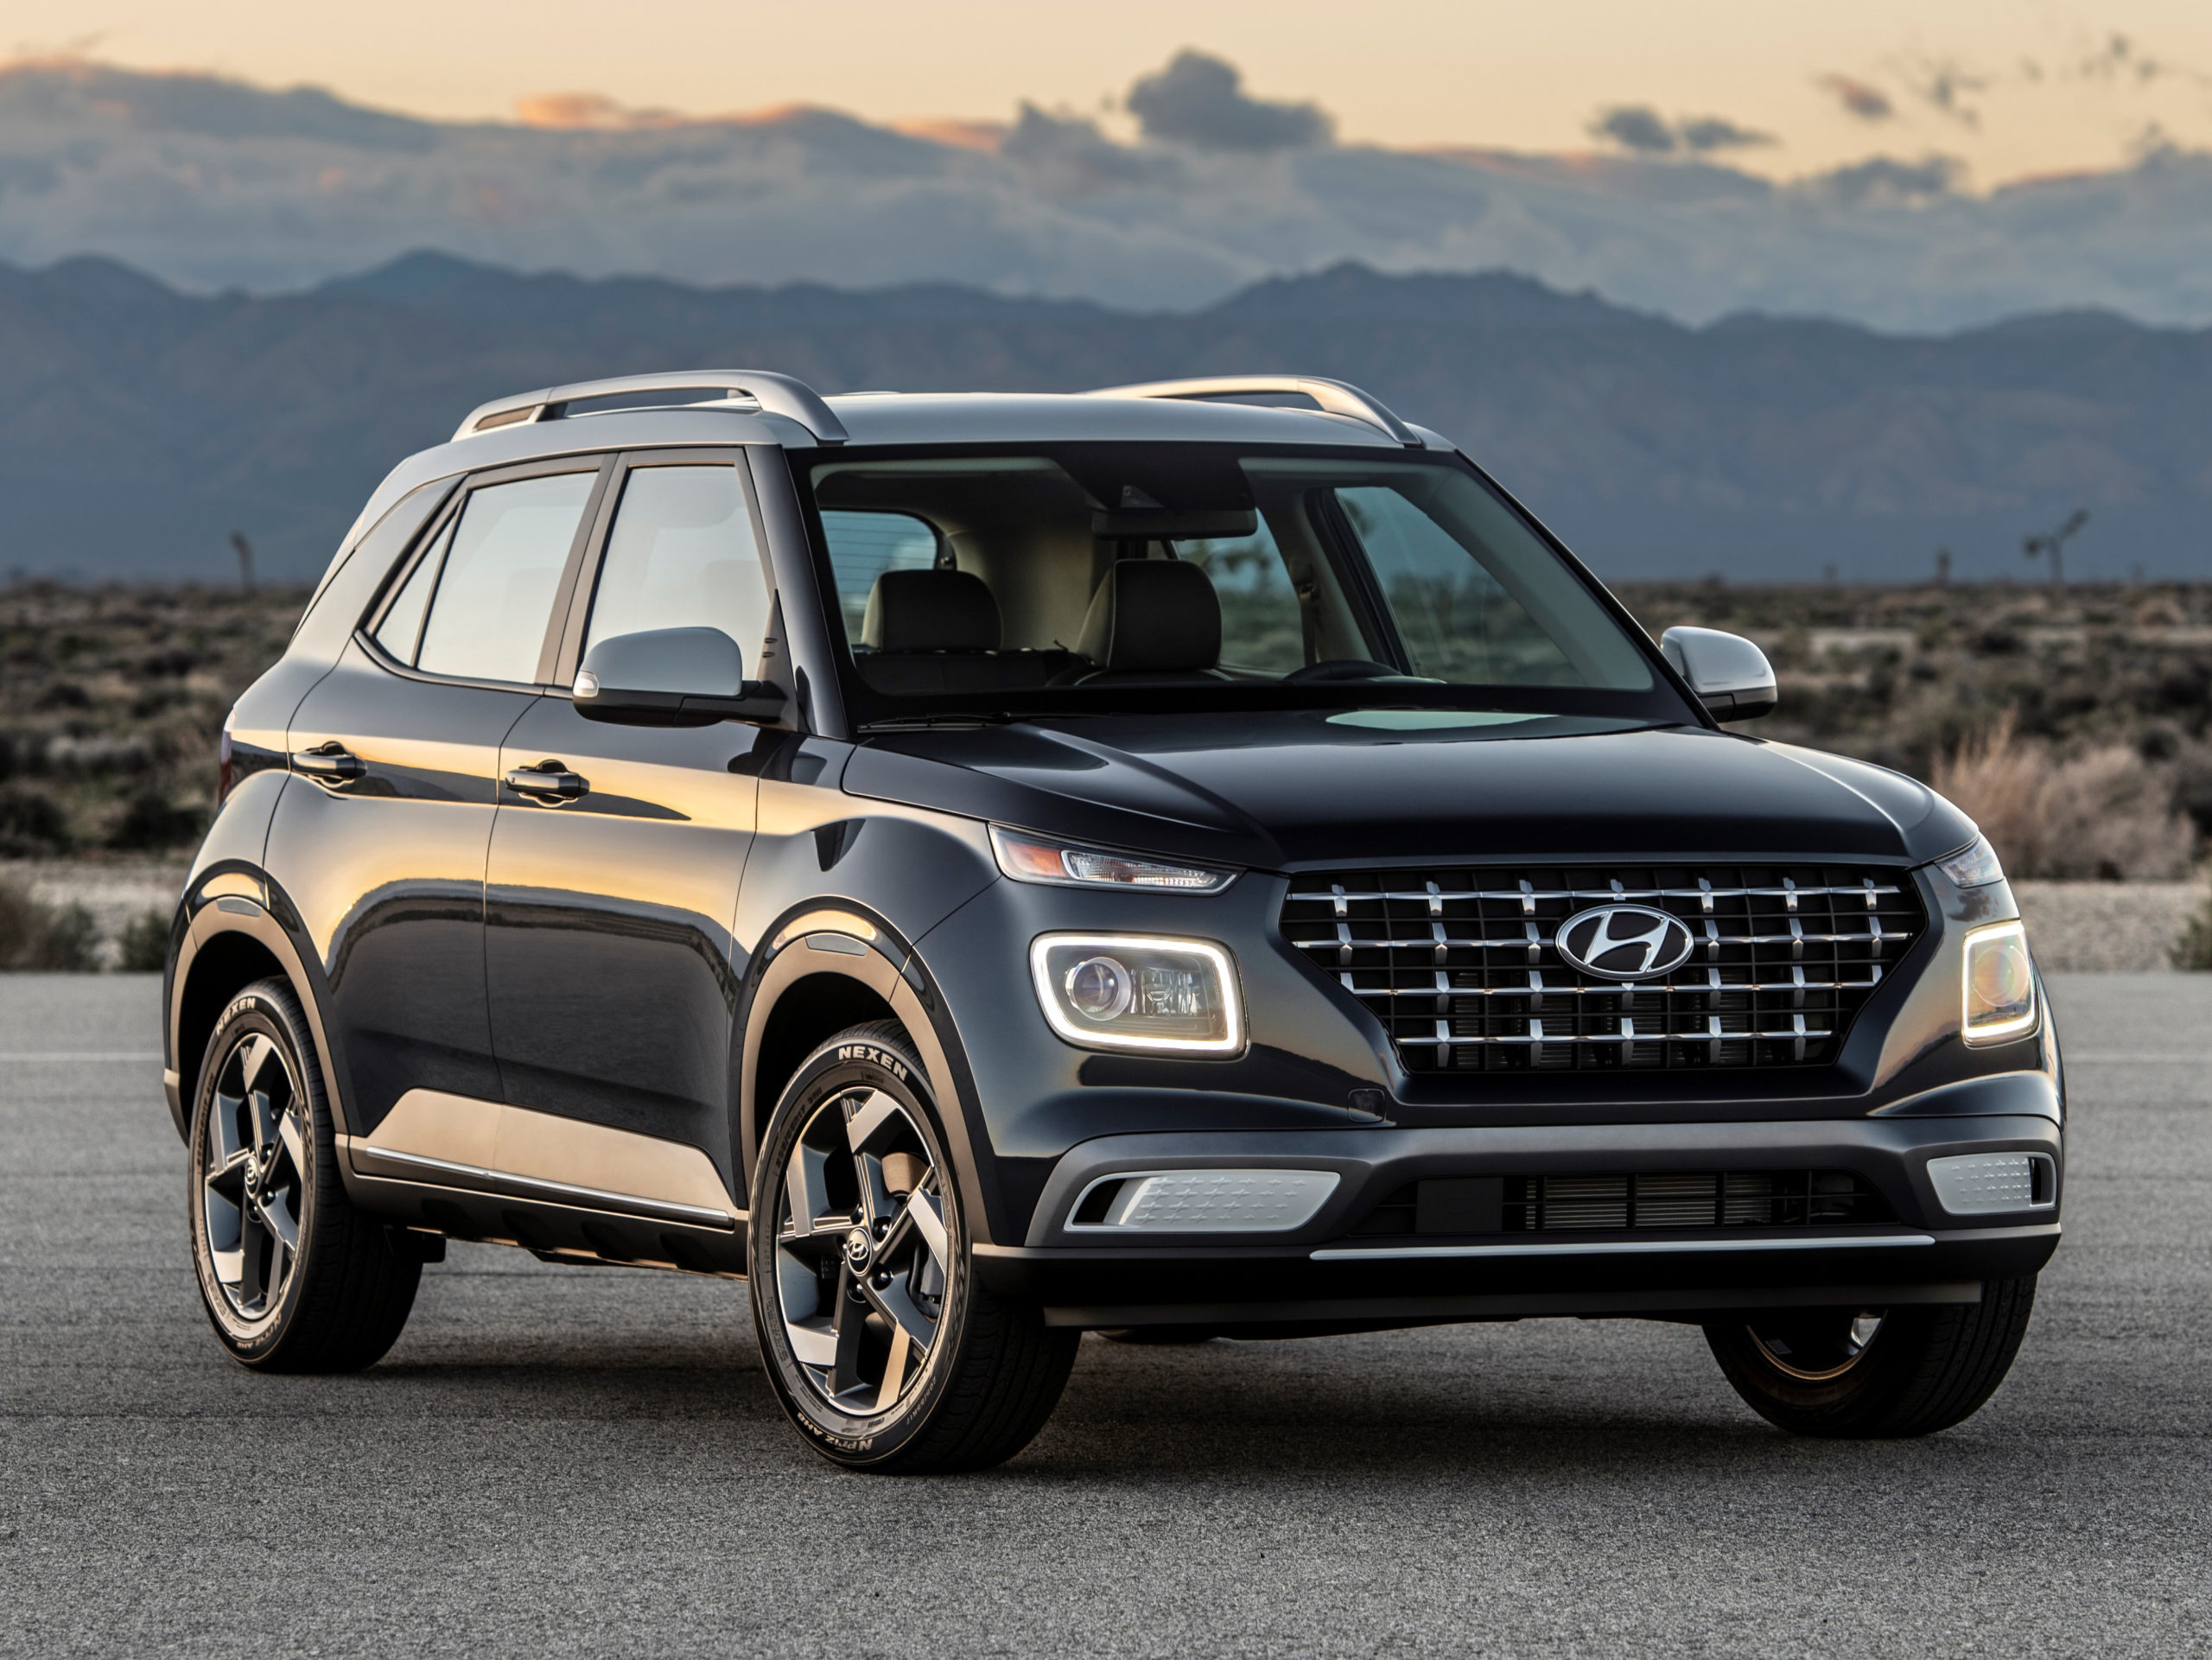 2021 Hyundai Venue Mpg Configurations, Specs, Redesign - 2022 Kia Soul Gas Mileage Configurations, Specification